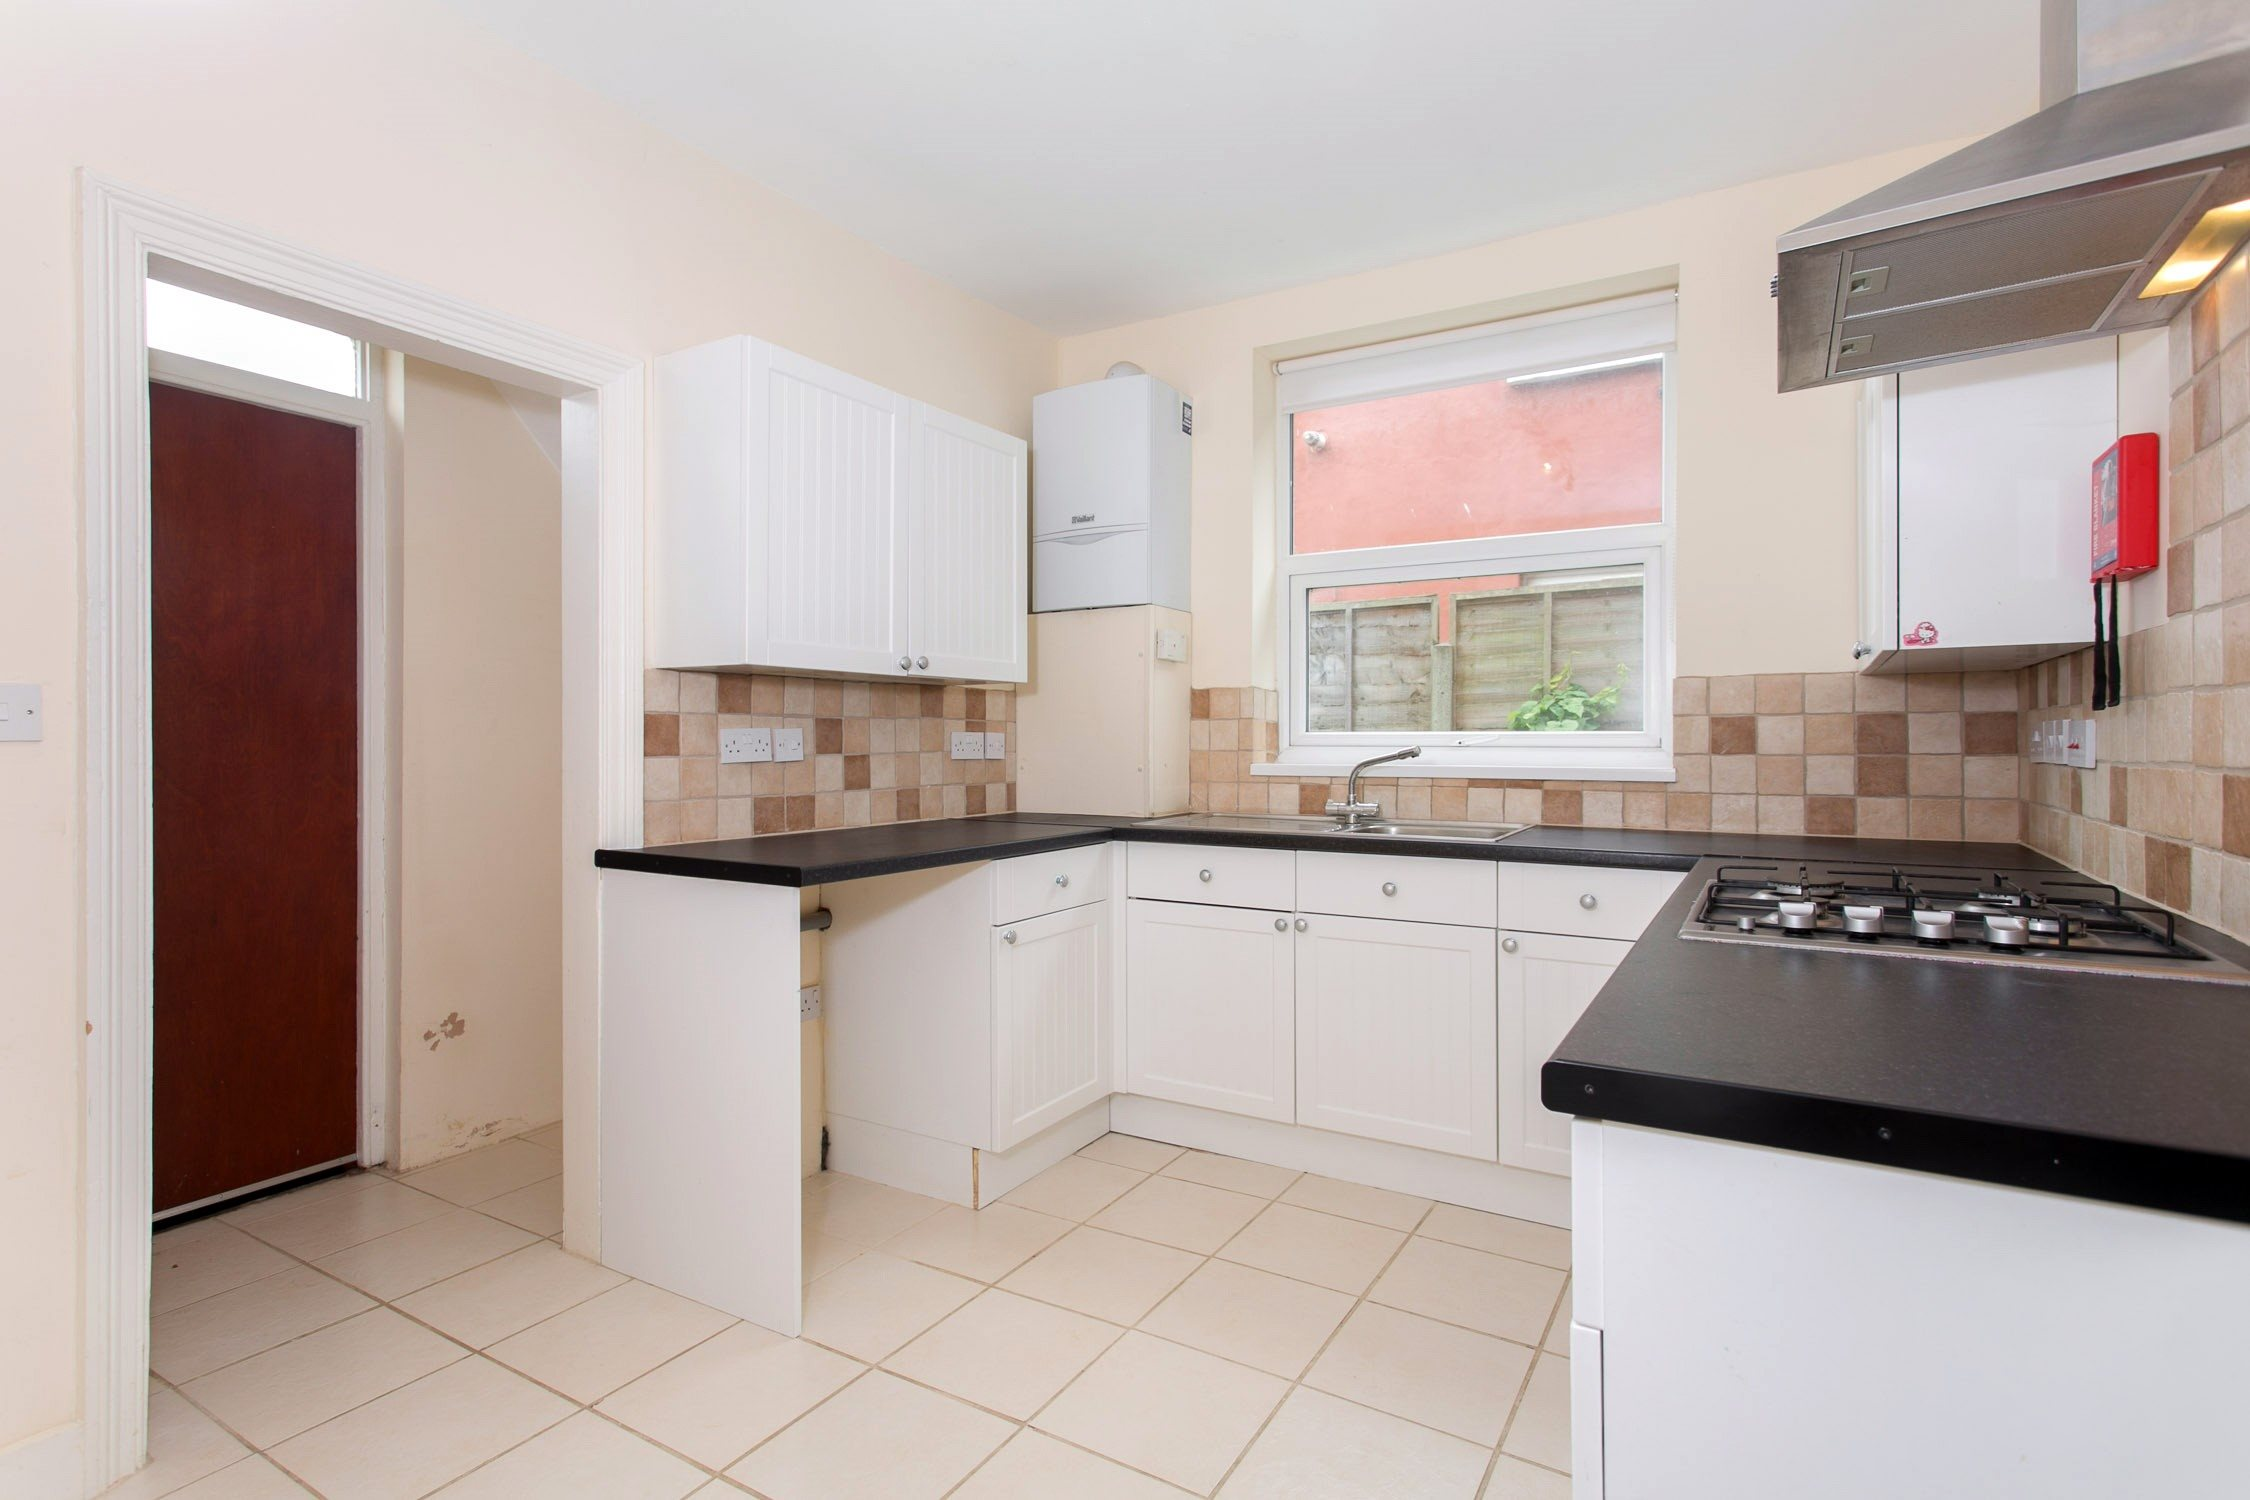 Portico - 2 Bedroom Flat recently let in East Finchley: Kitchener ...